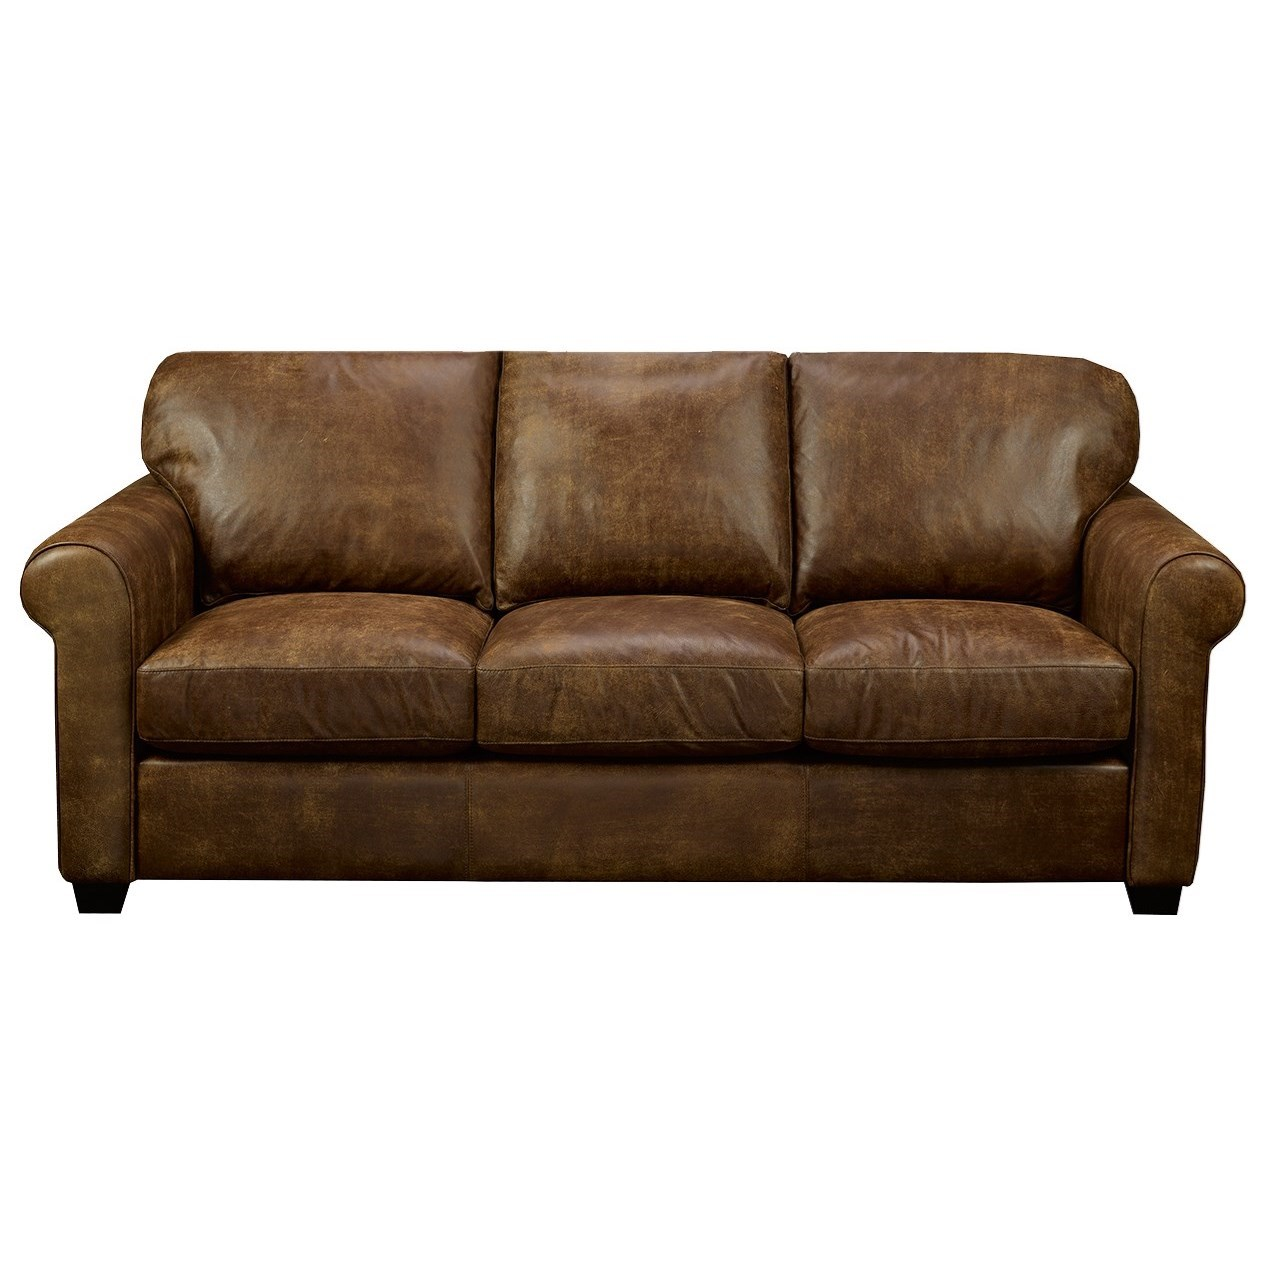 Brentwood Classics Ace Customizable Sofa - Item Number: 1503-38 Caribe Branch